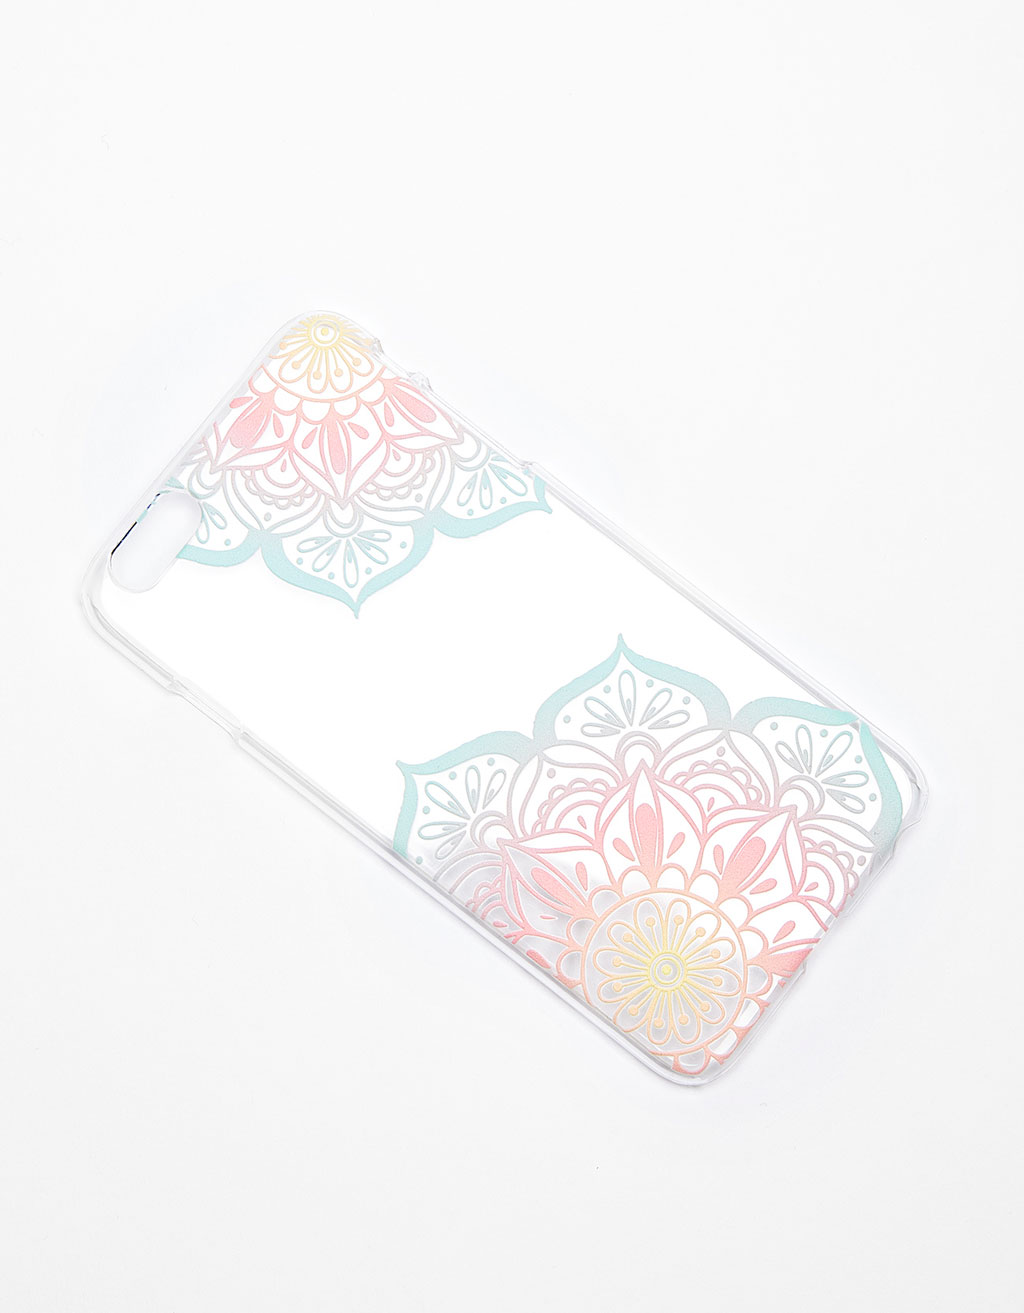 Carcasa relieve pastel iPhone 6 plus